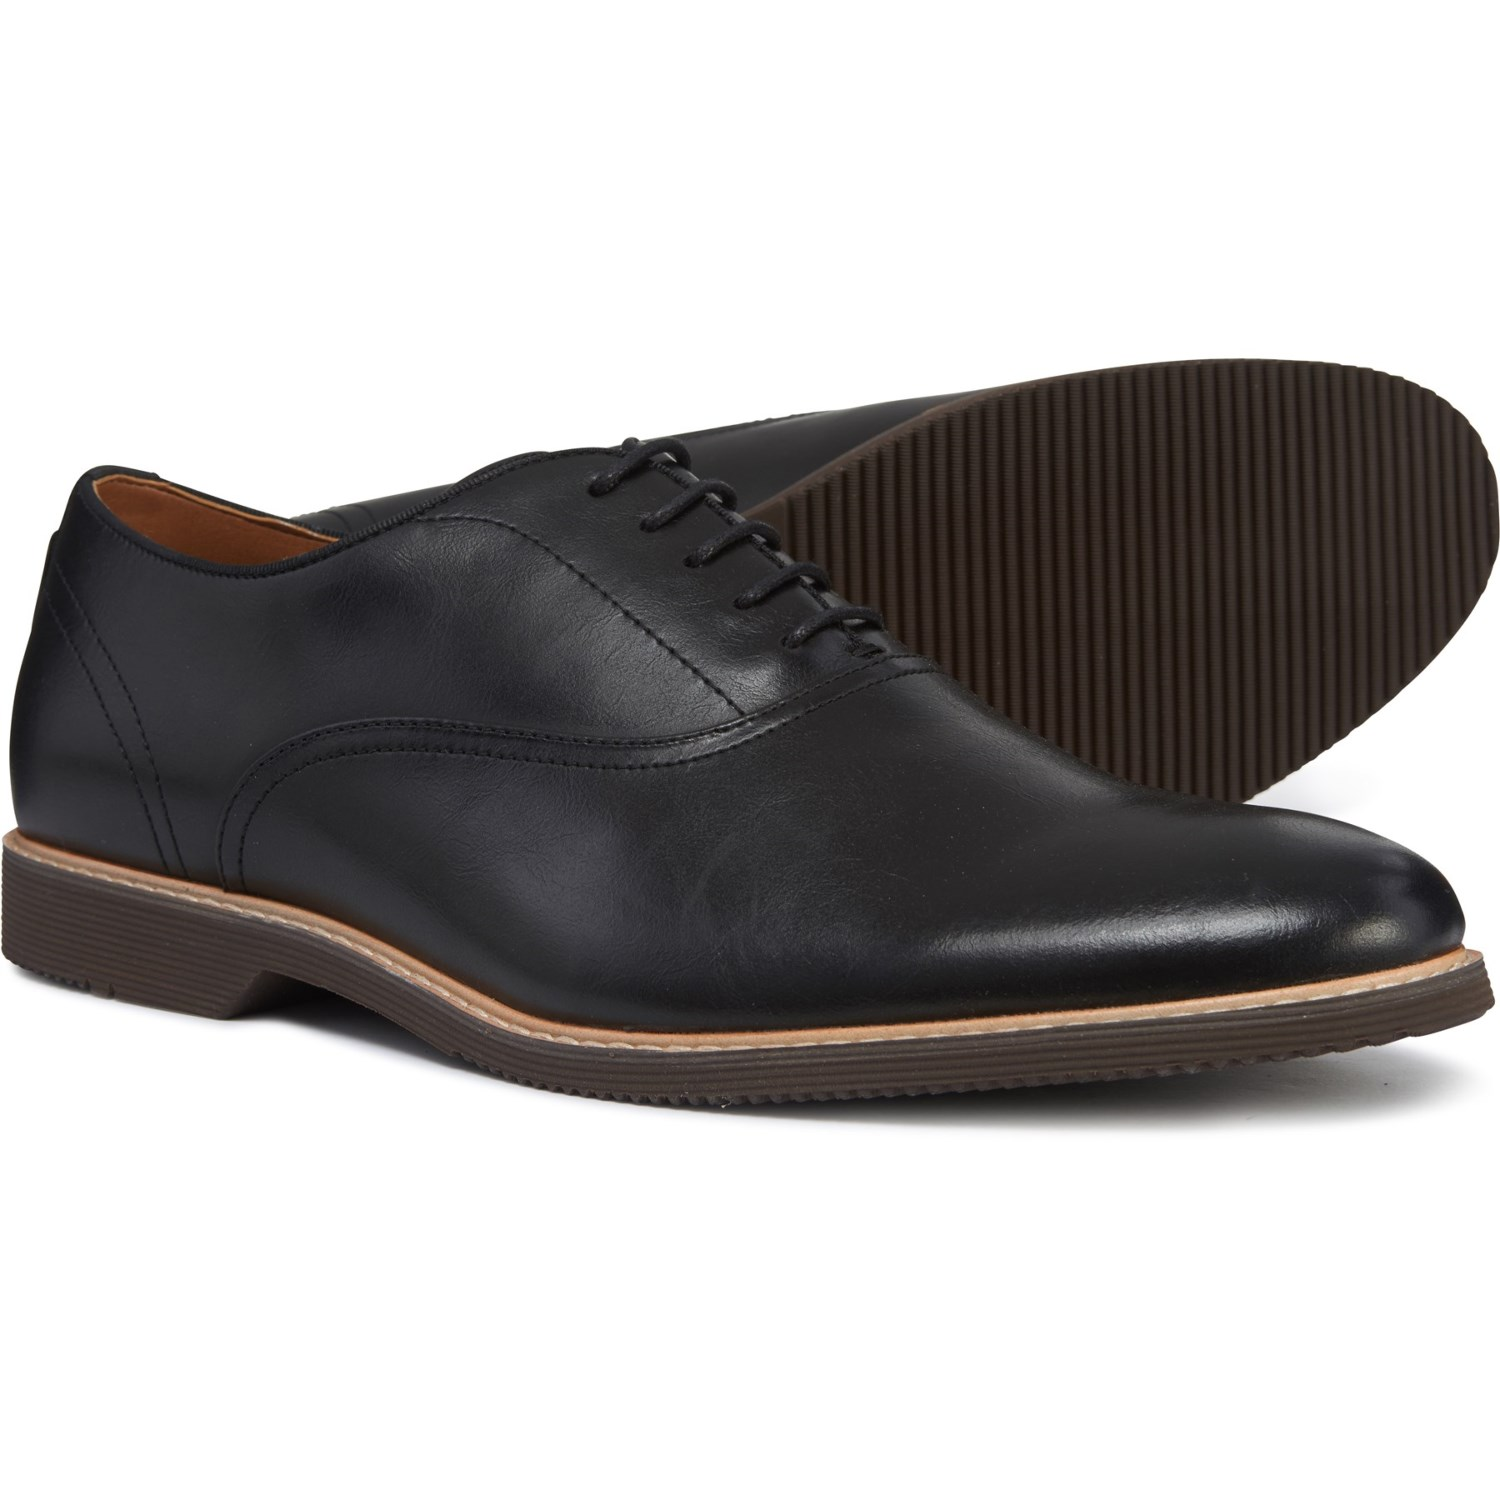 bf32a80a412 Steve Madden O'Leary Oxford Shoes (For Men) - Save 27%